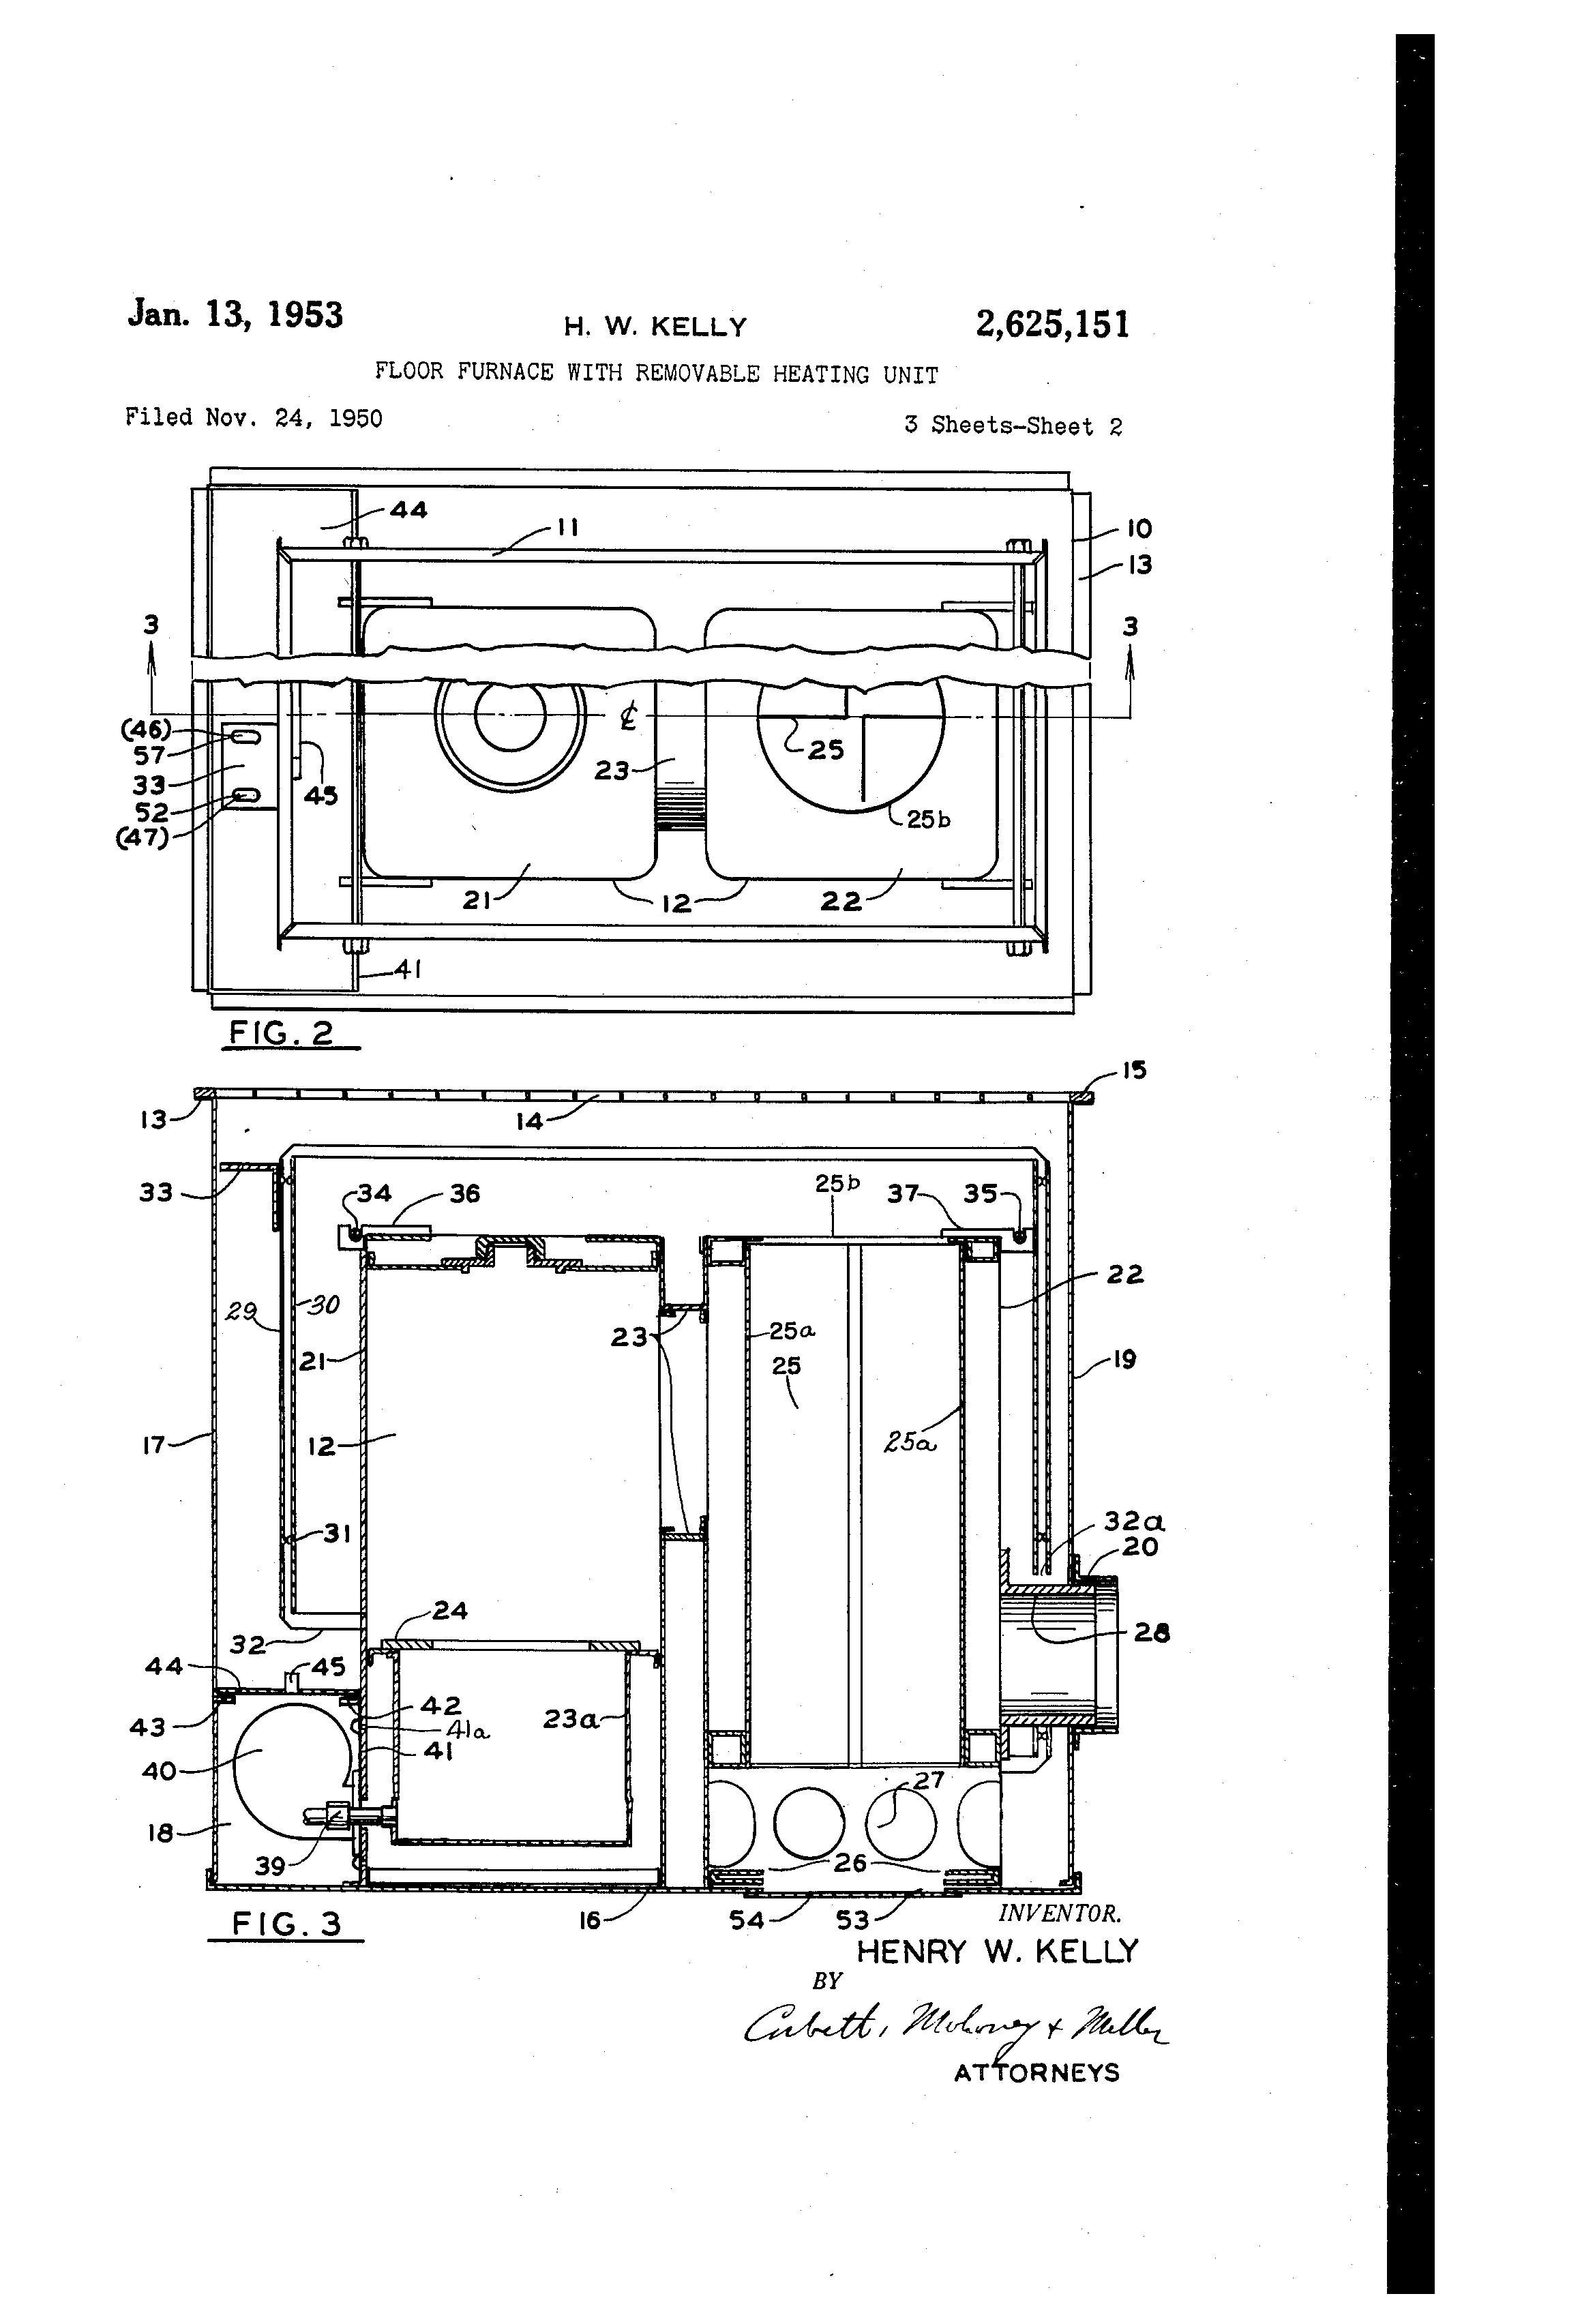 Diagram Of A Floor Furnace Wiring Strategy Design Plan Old Gas Schematic Patent Us2625151 With Removable Heating Unit Rh Google Com Na Brands Heater